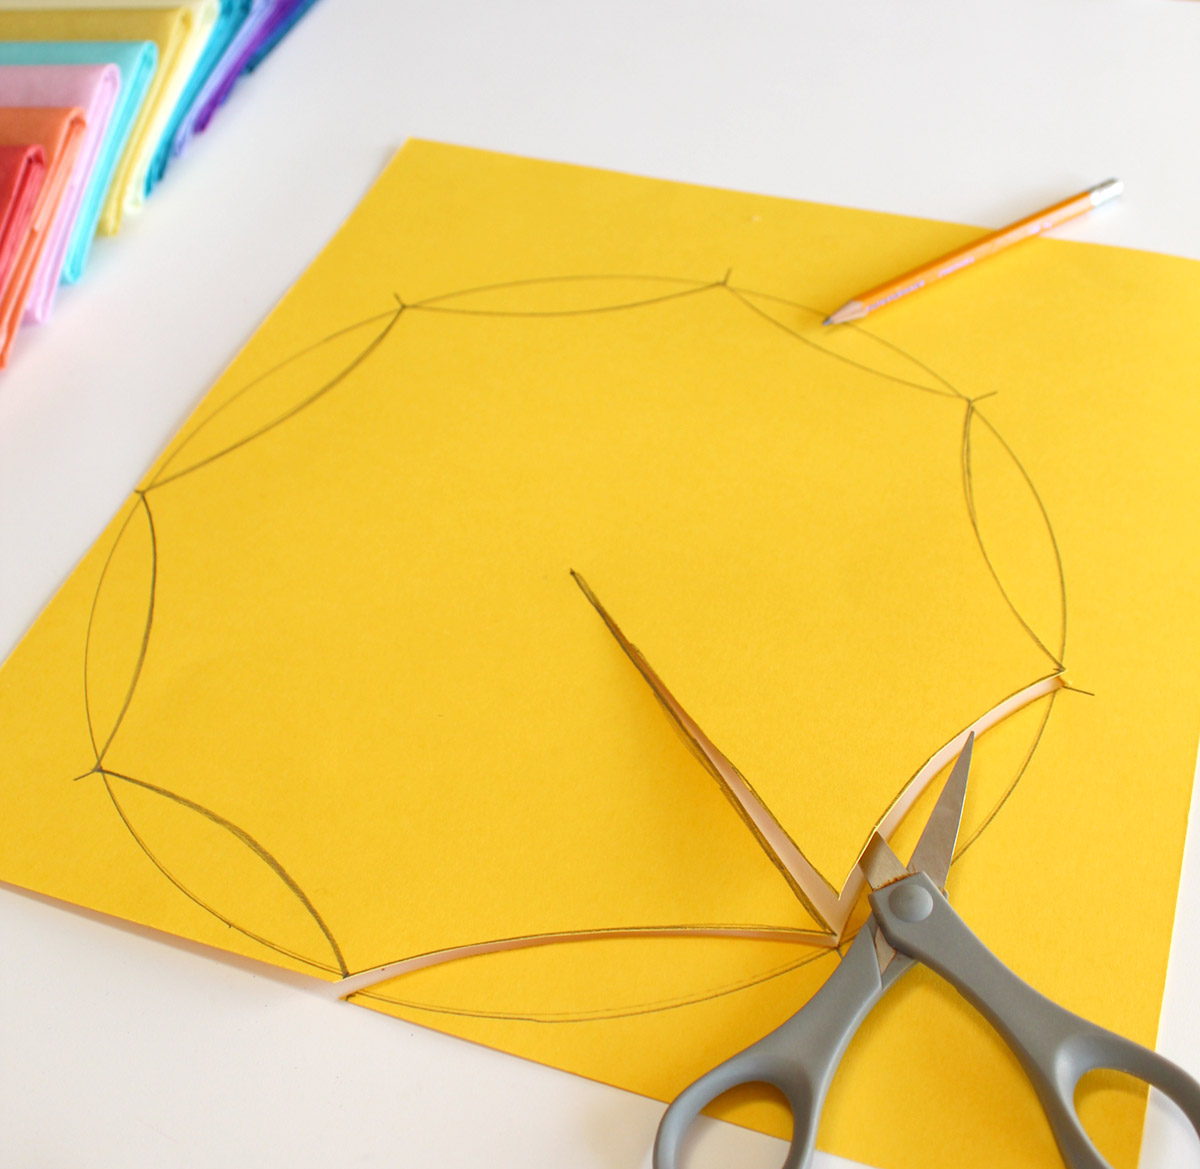 May Flower Umbrellas - Cut Out